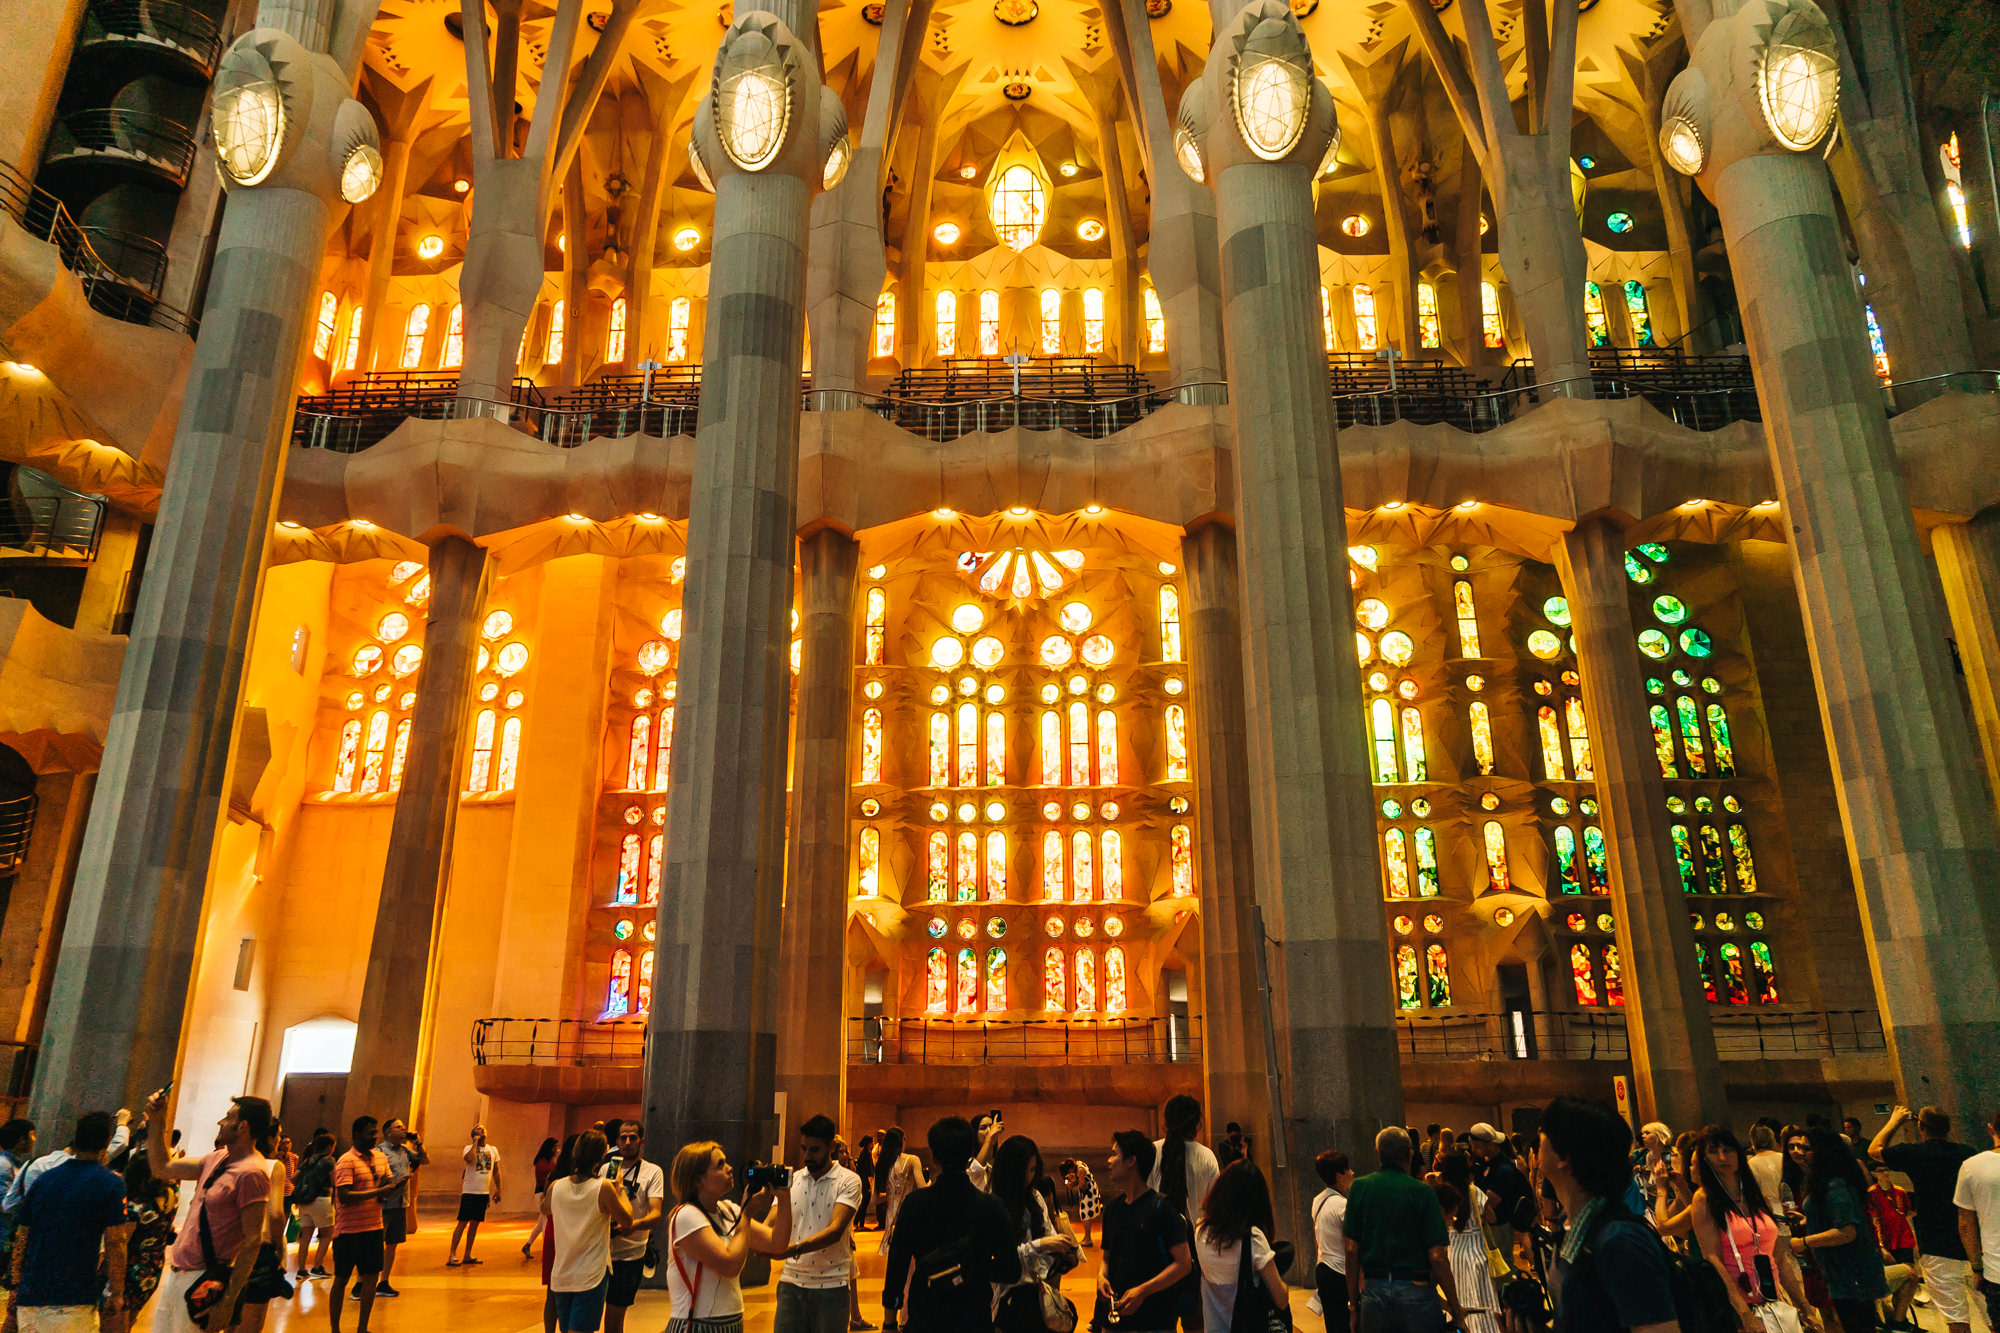 Be prepared to be surrounded by tourists at La Sagrada Familia